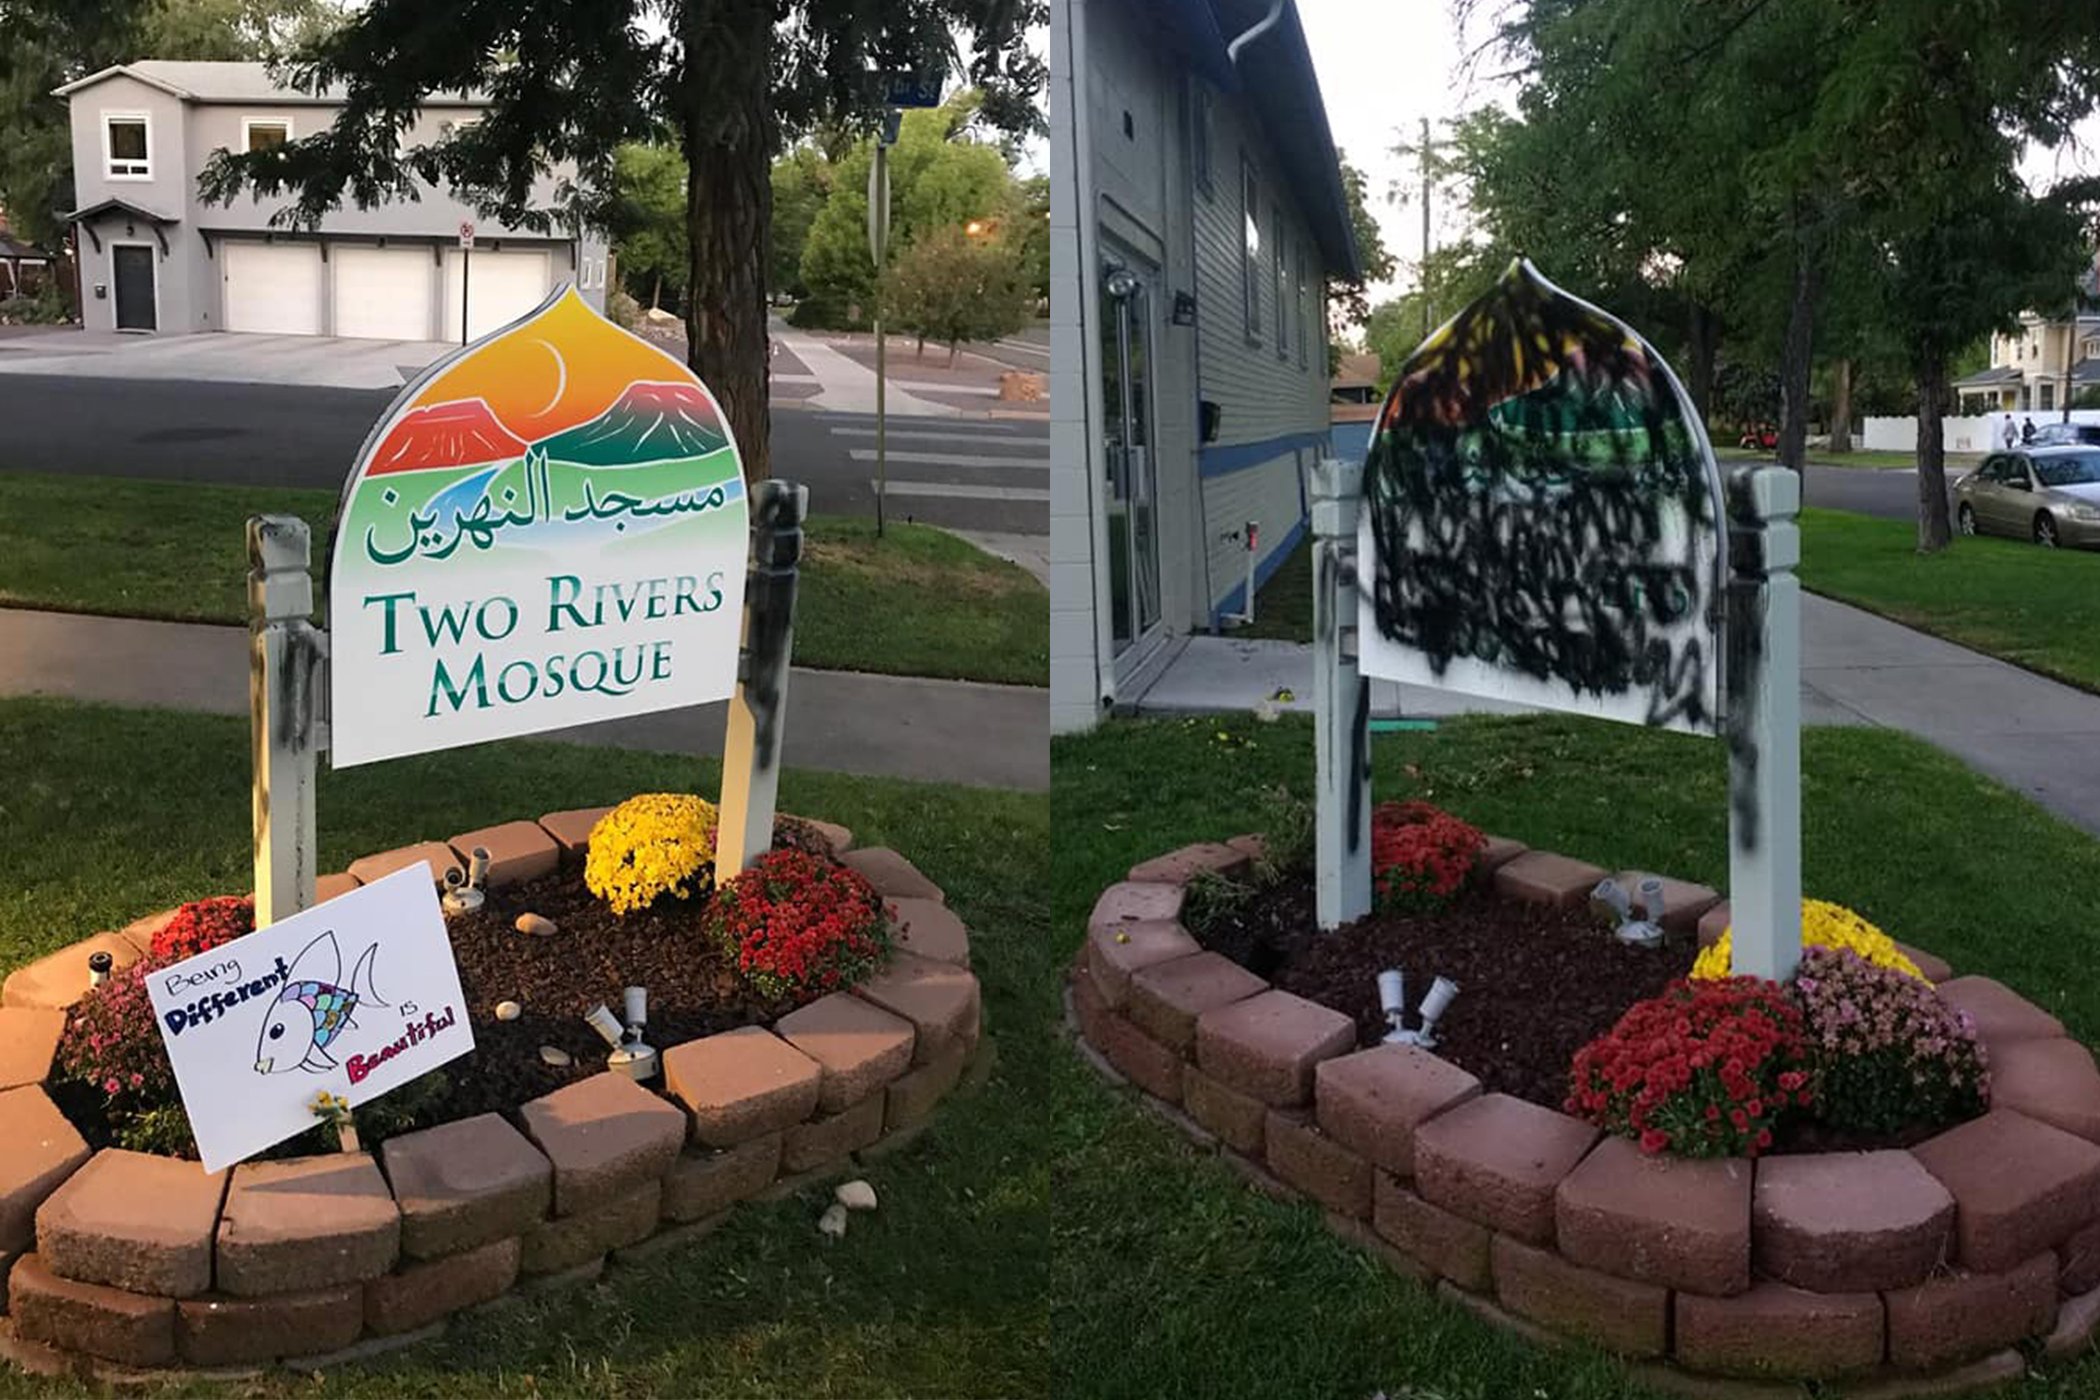 The sign in front of the Two Rivers Mosque in Grand Junction. On the left, clean, and on the right, vandalized. Video surveillance caught a man spray painting the sign and disturbing the flowerbed.